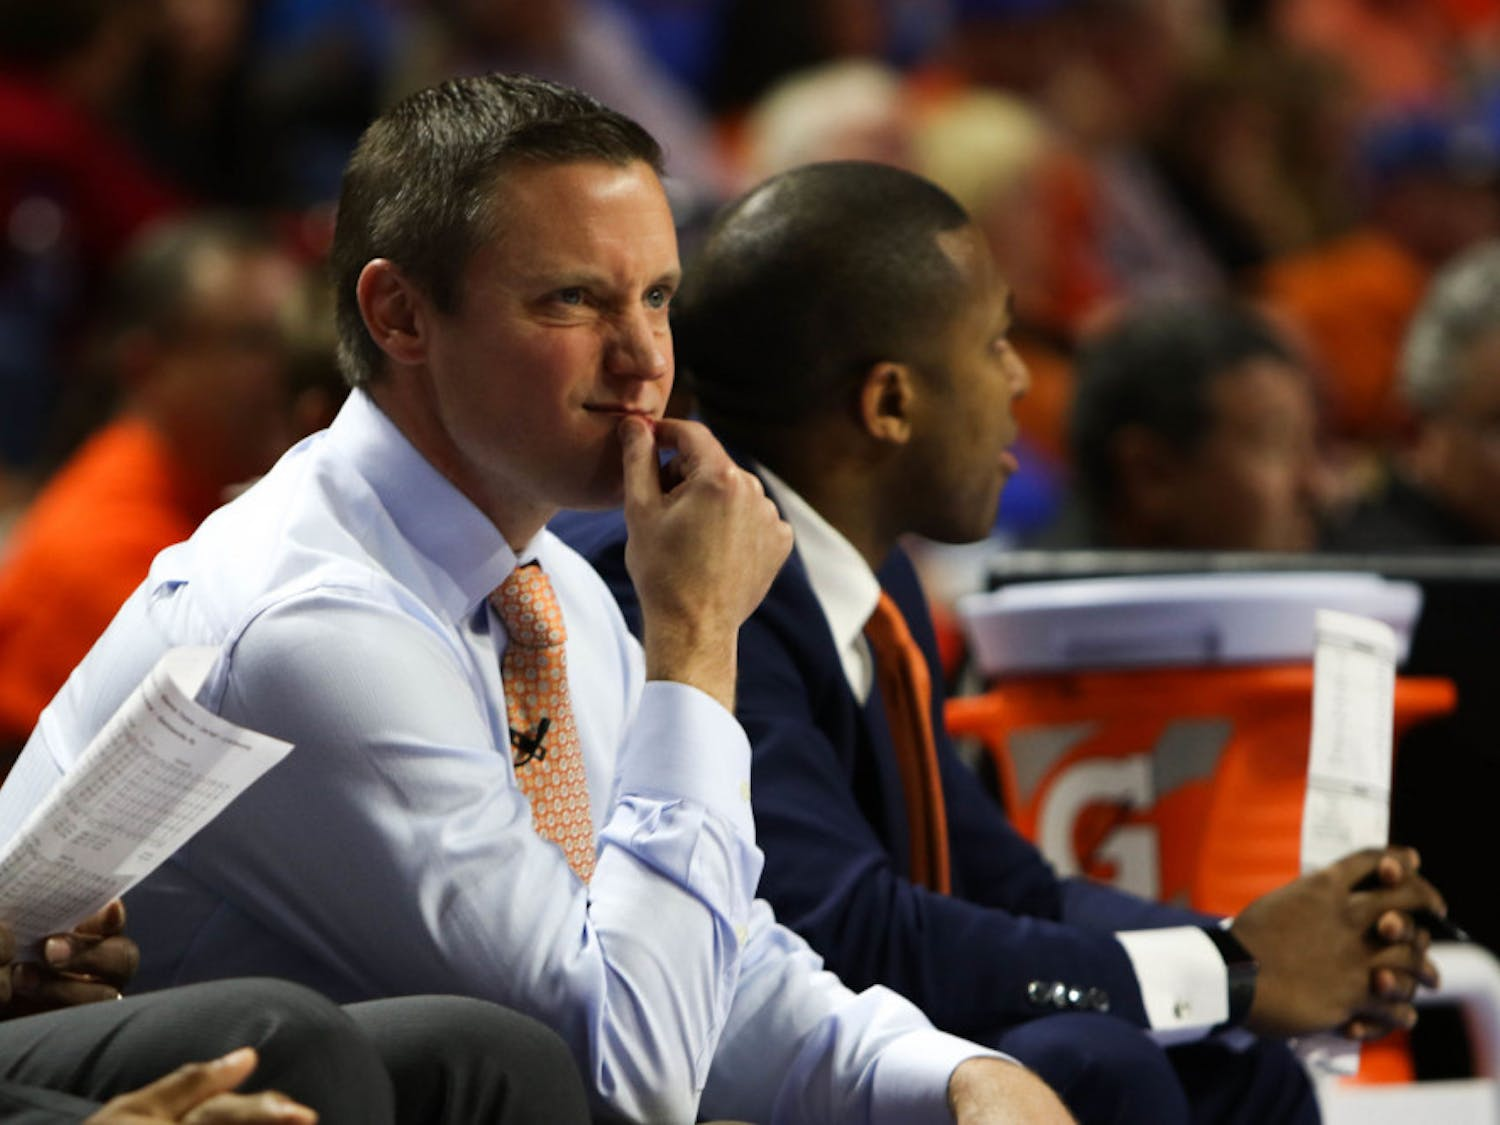 Men's basketball coach Mike White and the Gators are in the middle of one of the worst offensive seasons in the past 20 years. They are averaging 68.7 points a game, the second lowest in that span.